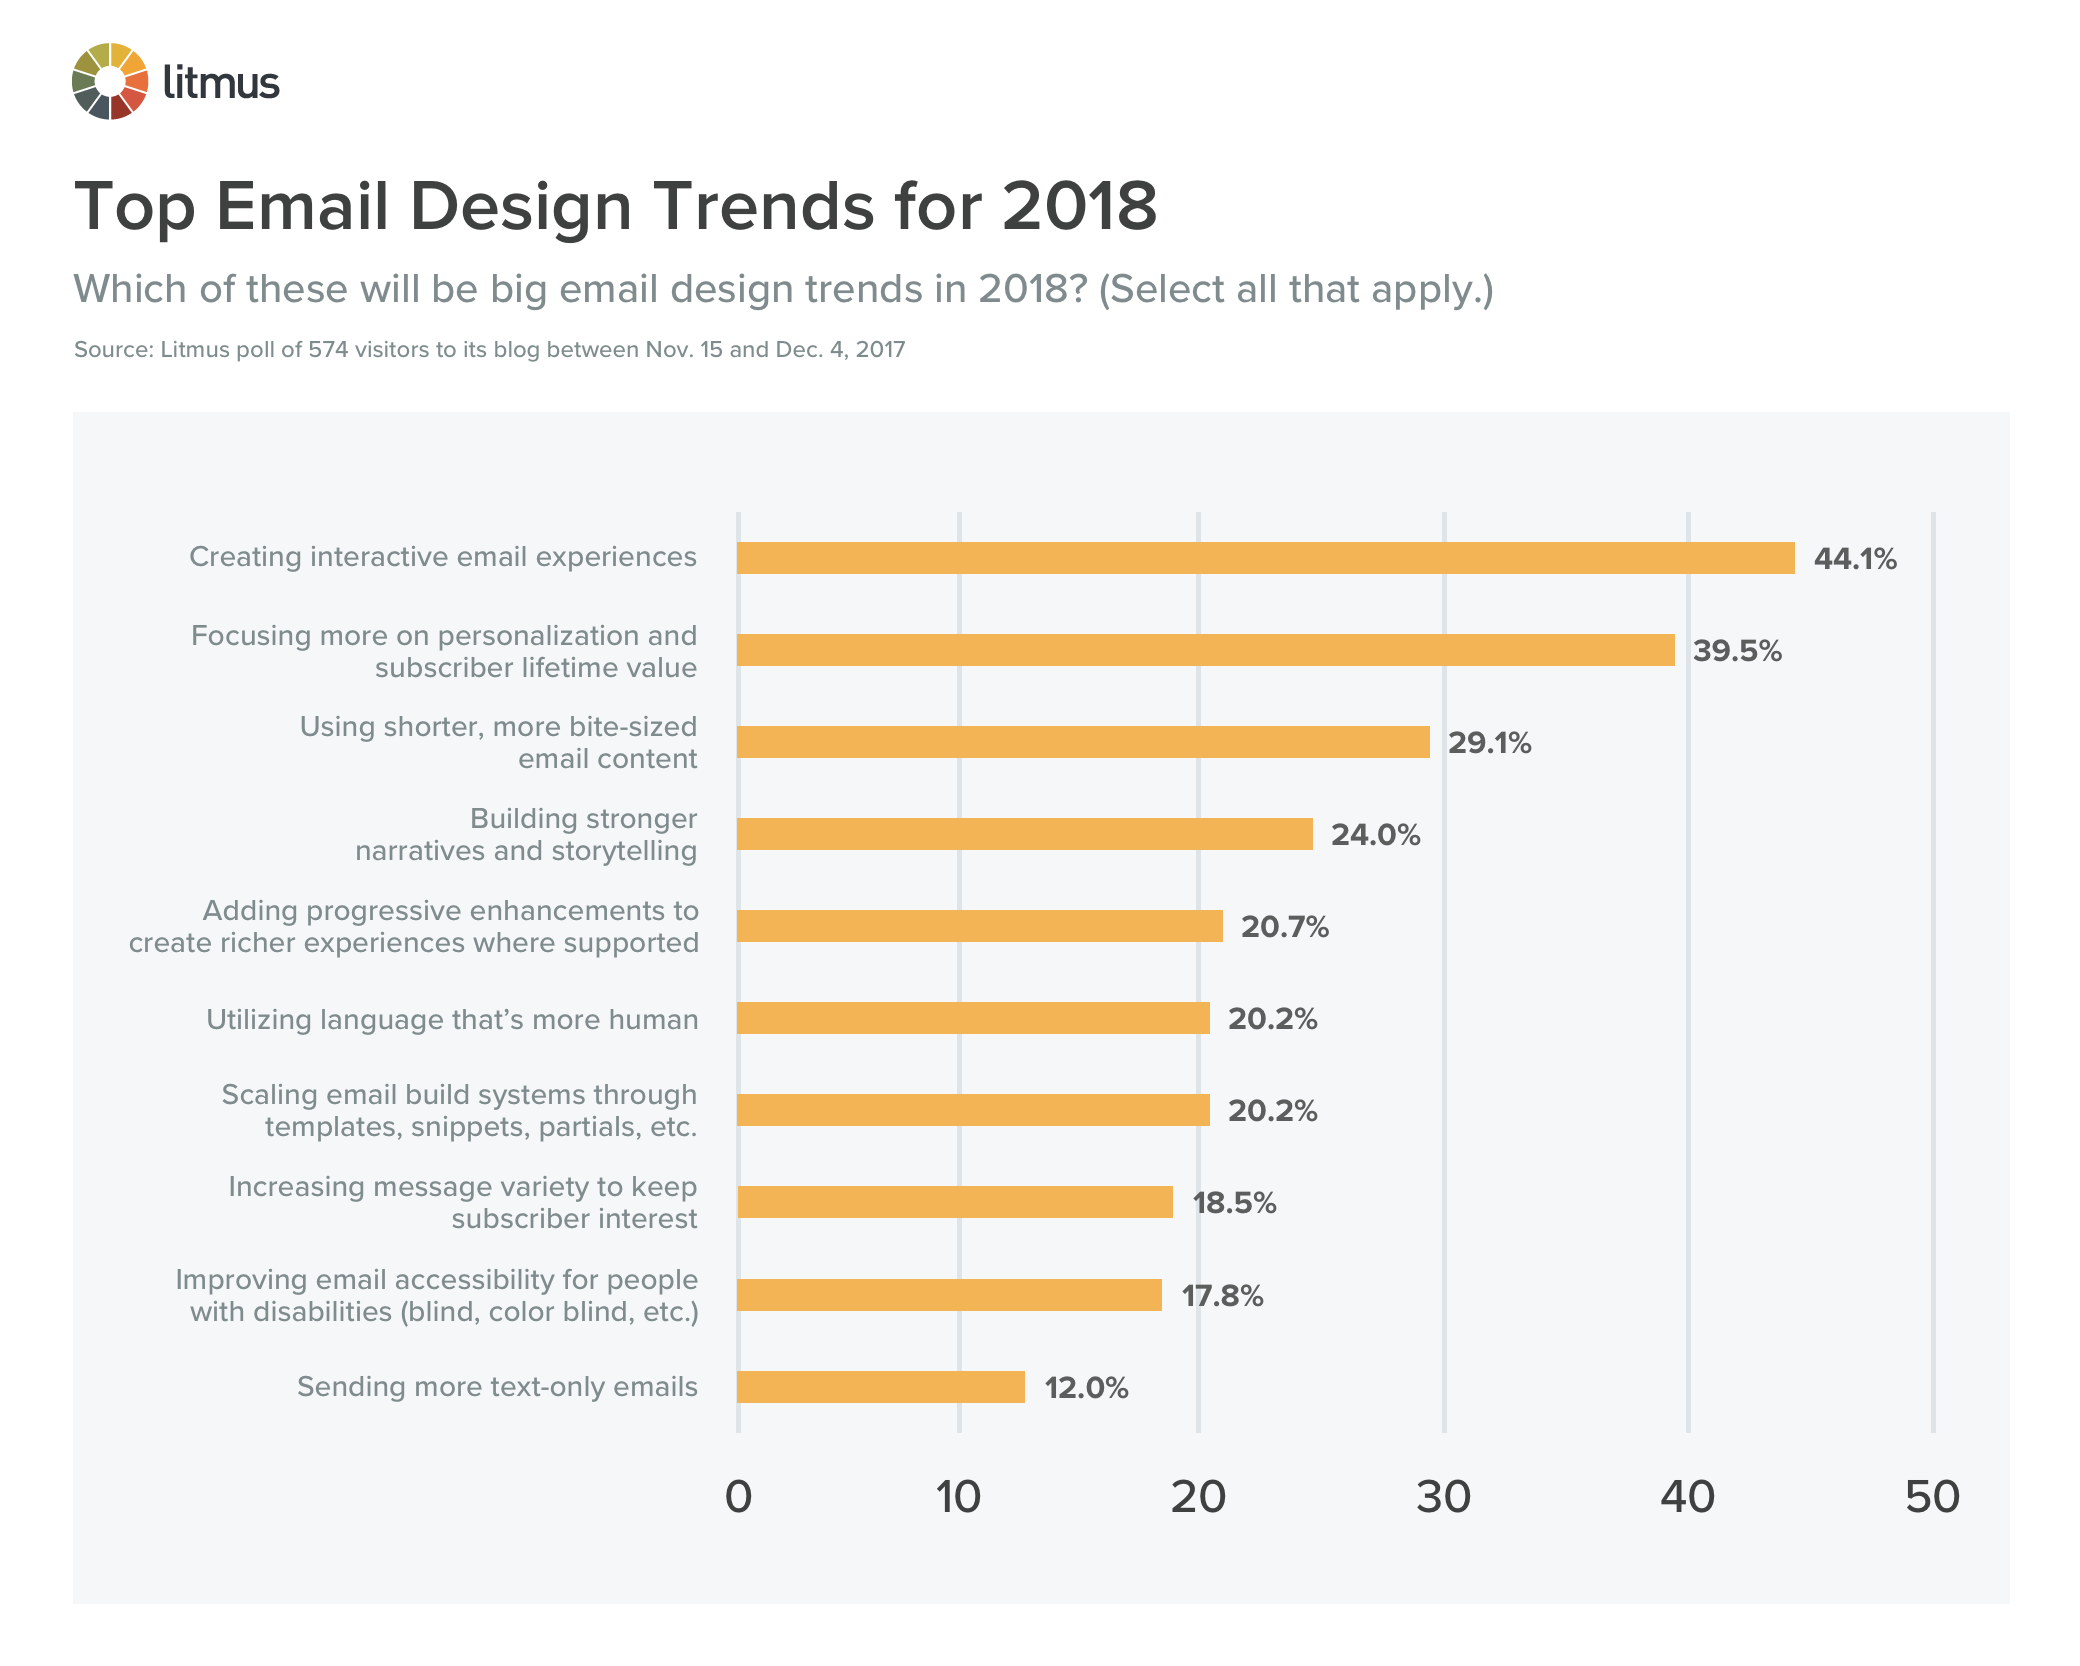 CLICK TO ENLARGE: Top Email Design Trends for 2018 chart